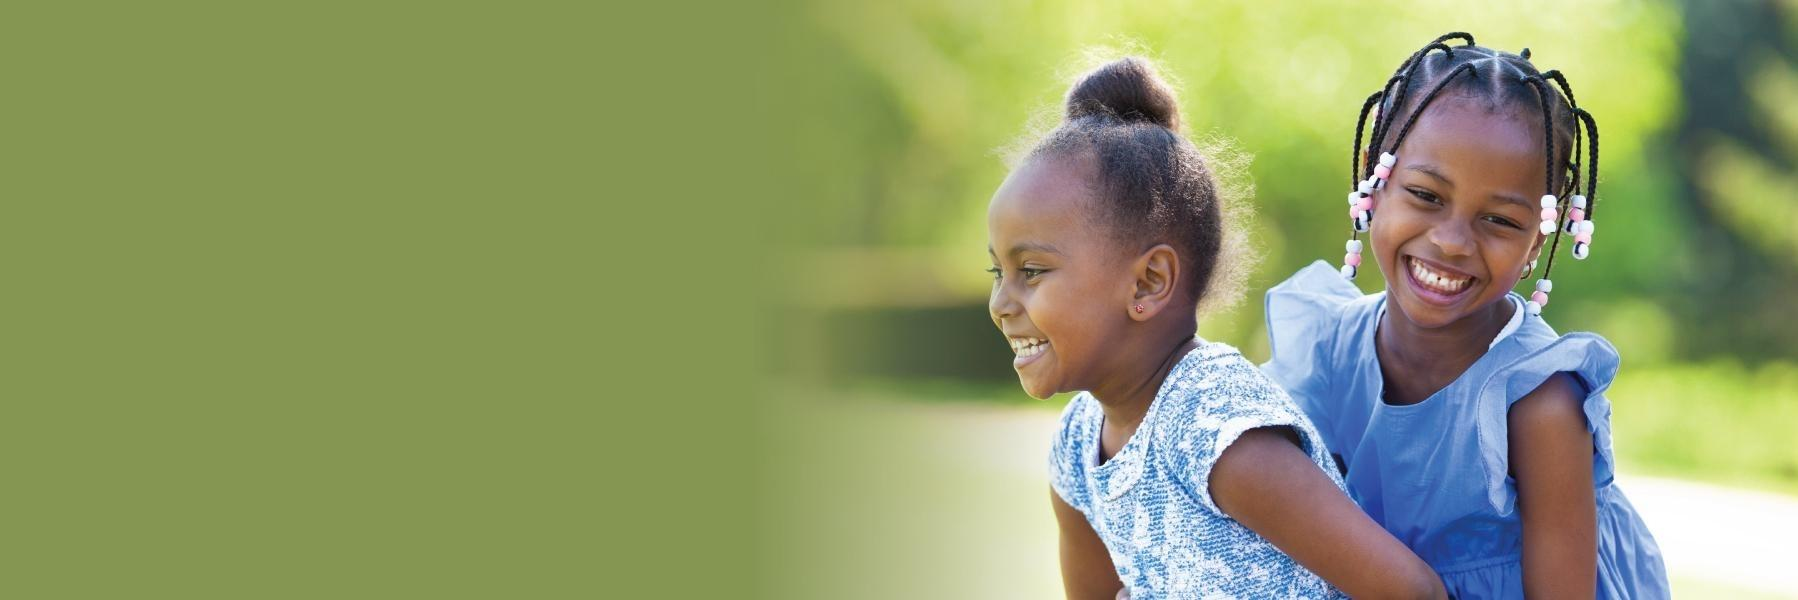 Two young girls playing outside | Pediatric Dentistry St. Cloud, FL